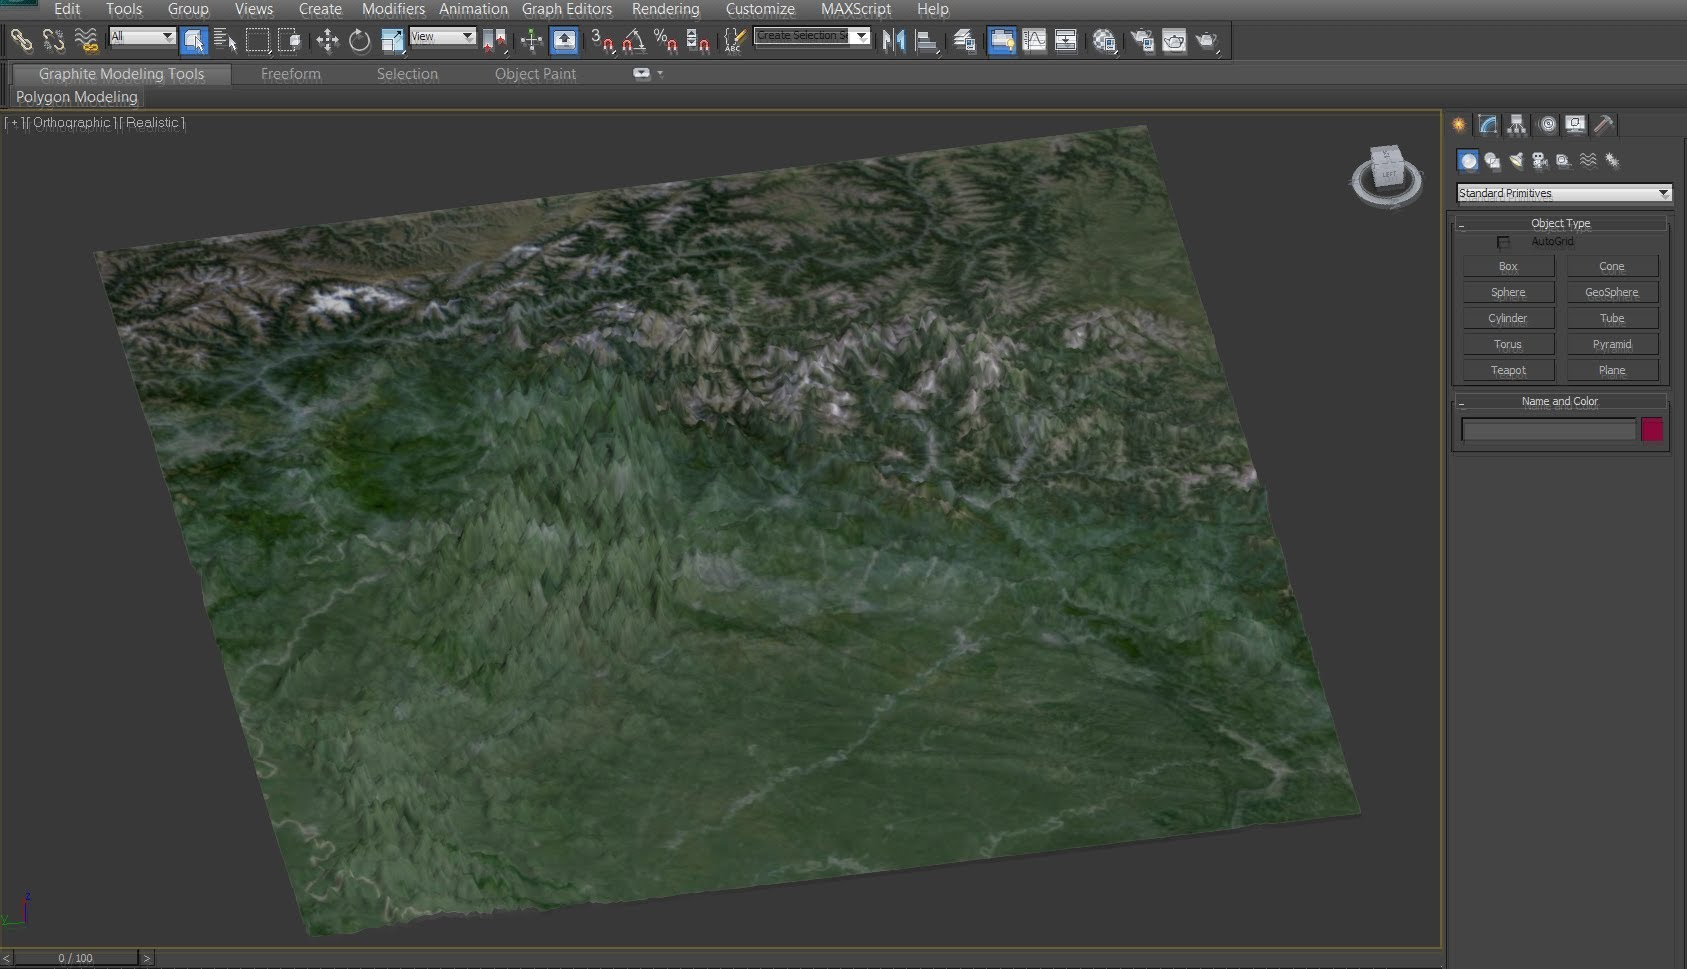 Creating a Highly Detailed 3D Terrain in 3Ds Max with Google Earth